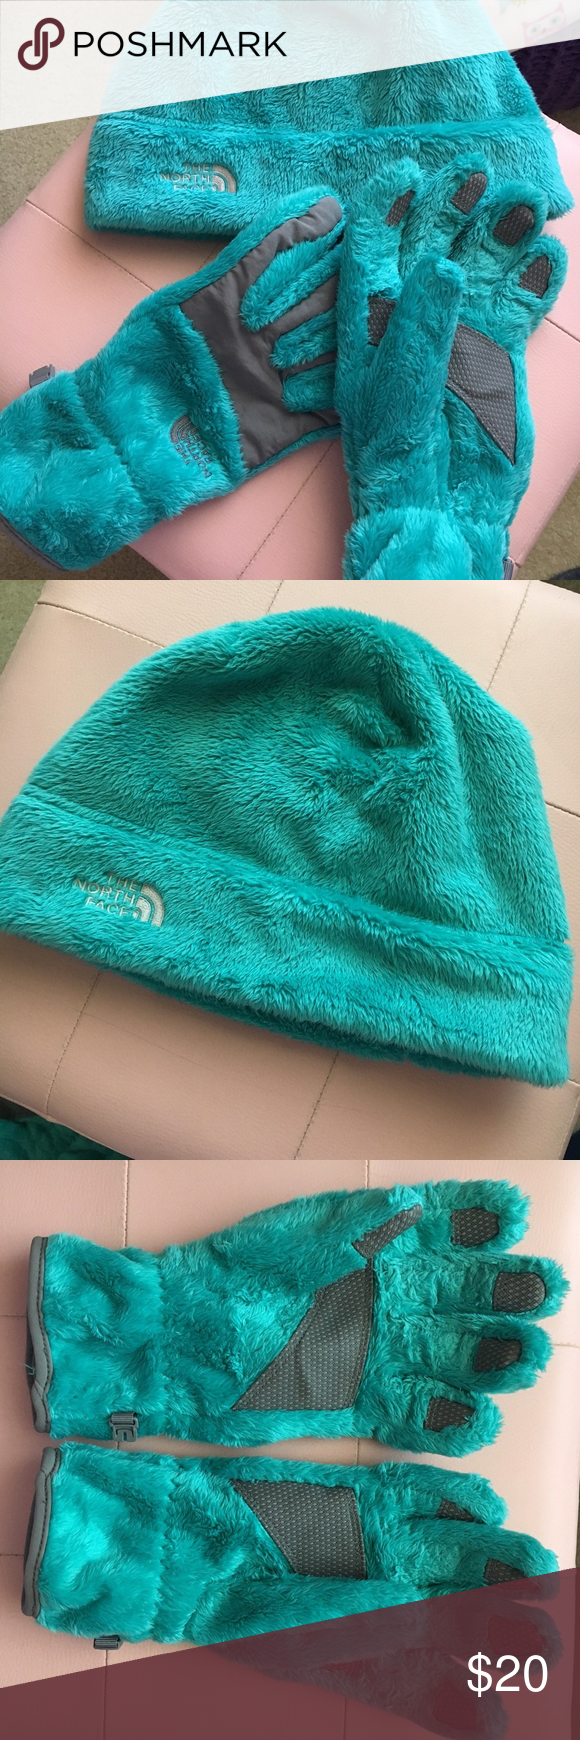 ❄️The North Face Hat and Glove Bundle❄️ Beautiful teal colored hat and gloves from The North Face. They've both only been worn a handful of times, and overall they're in amazing condition. There's very minor wear on the palms of the gloves, and that's all. :-) The North Face Accessories